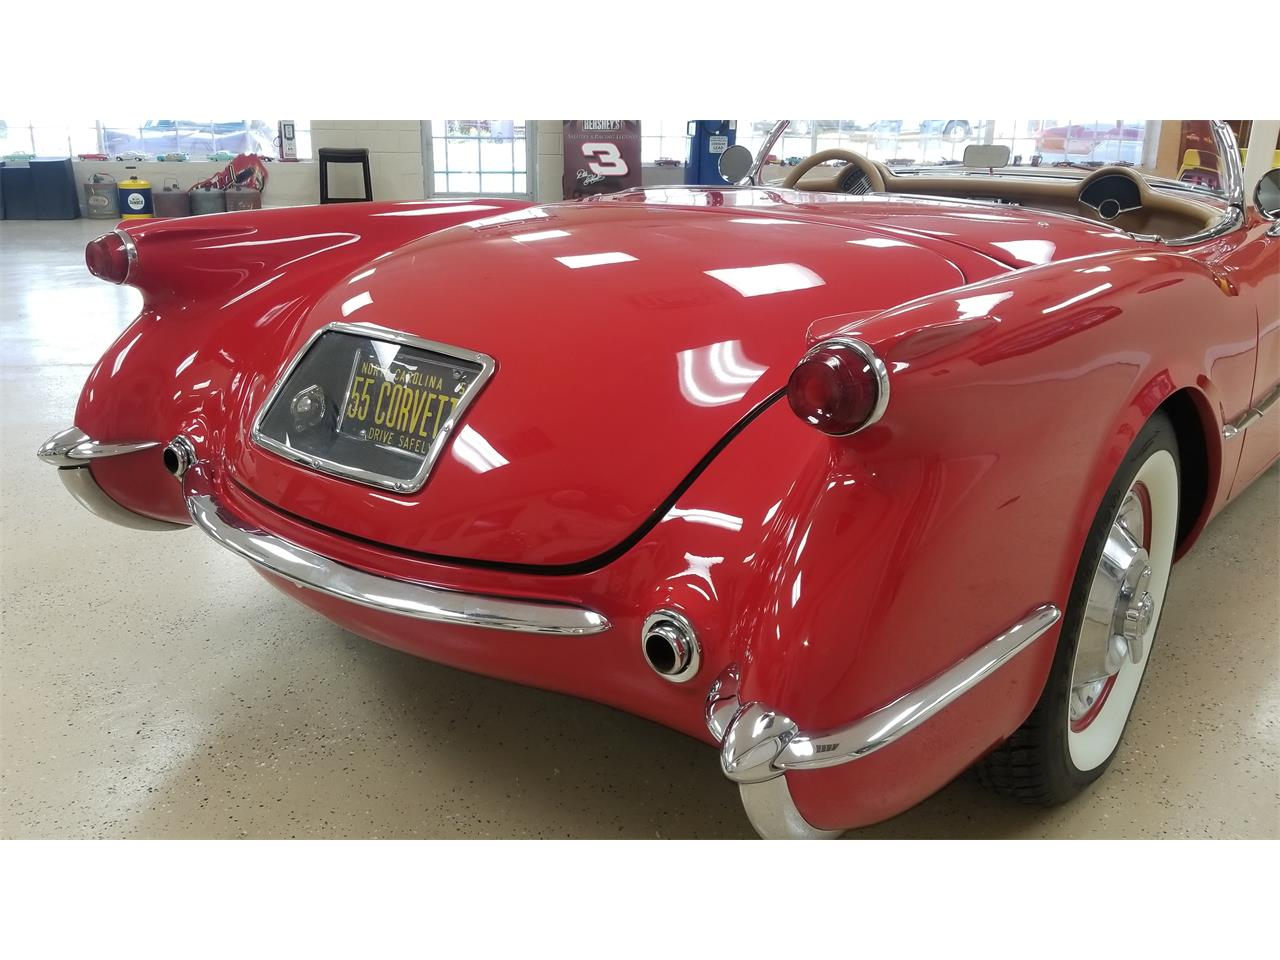 Large Picture of '55 Chevrolet Corvette located in Henderson North Carolina - $52,000.00 - QKKE